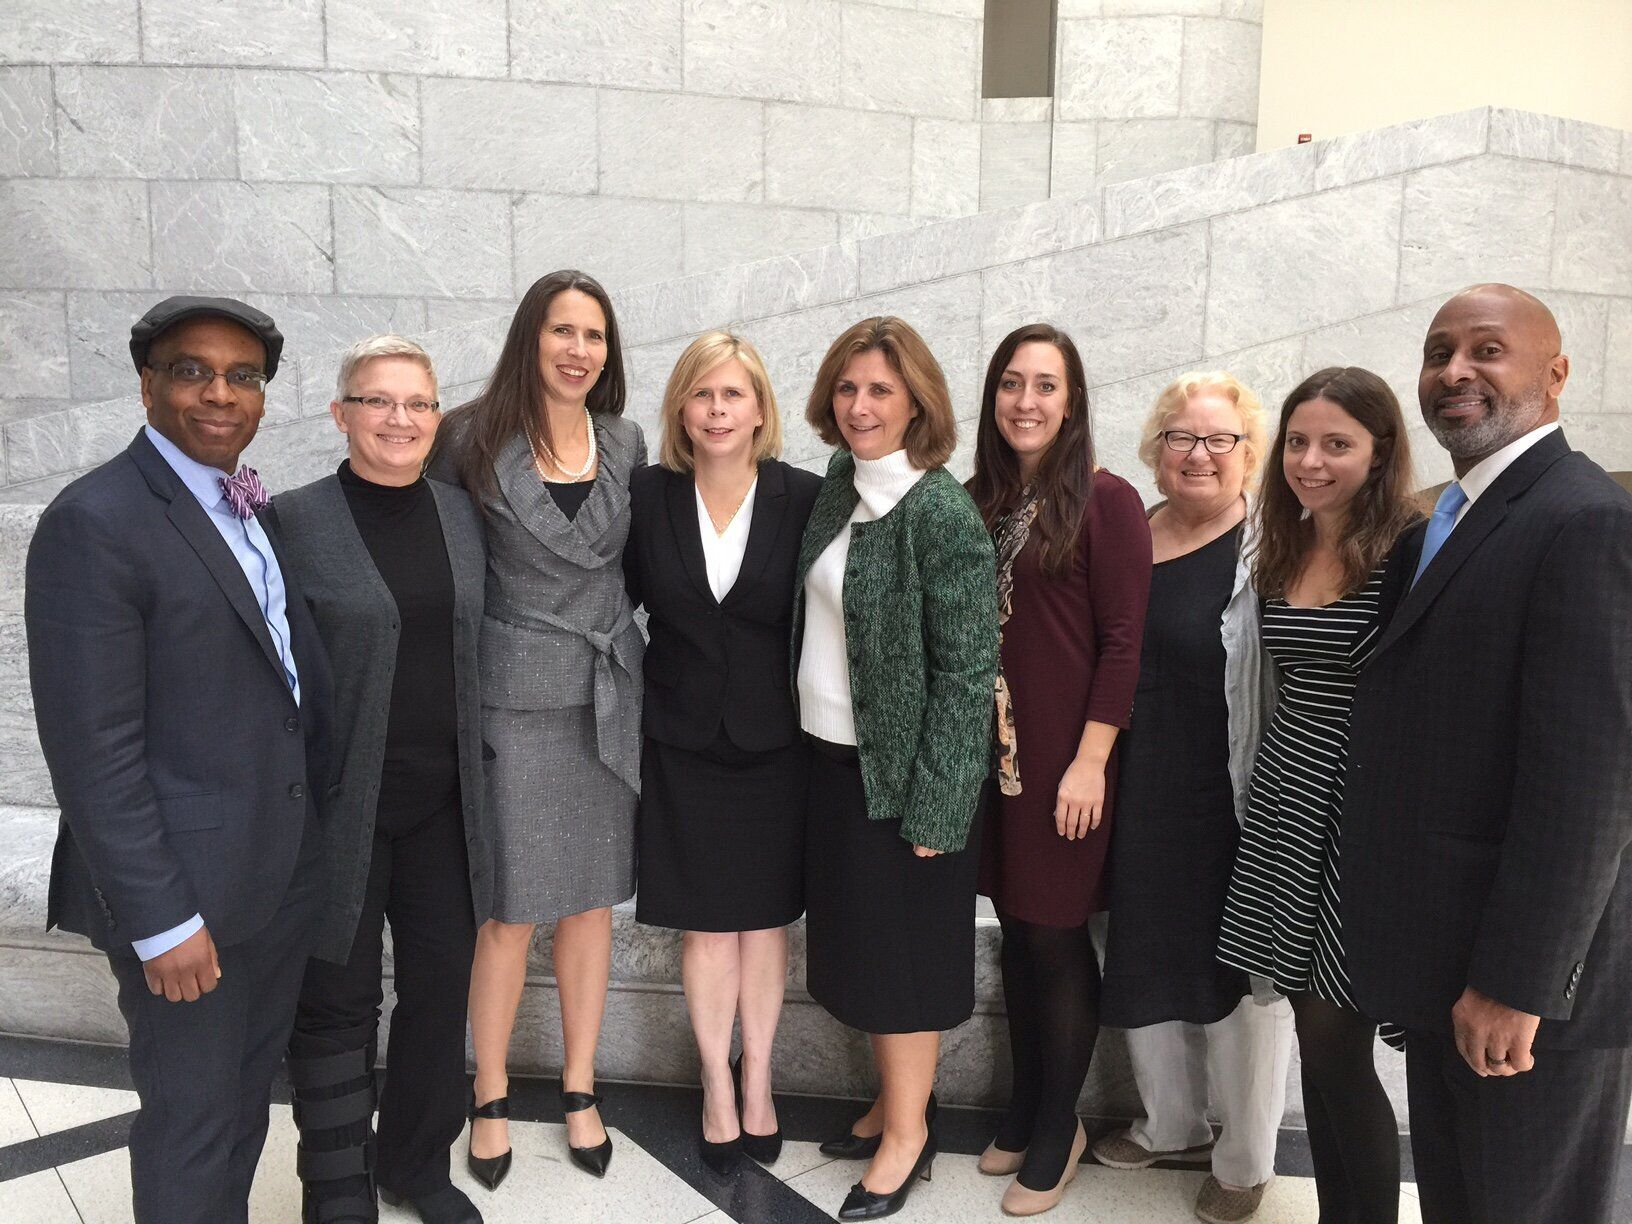 Lisa Montgomery's legal team, pictured in 2016. Kelley Henry is fourth from the left. Her co-counsel,Amy Harwell, is st